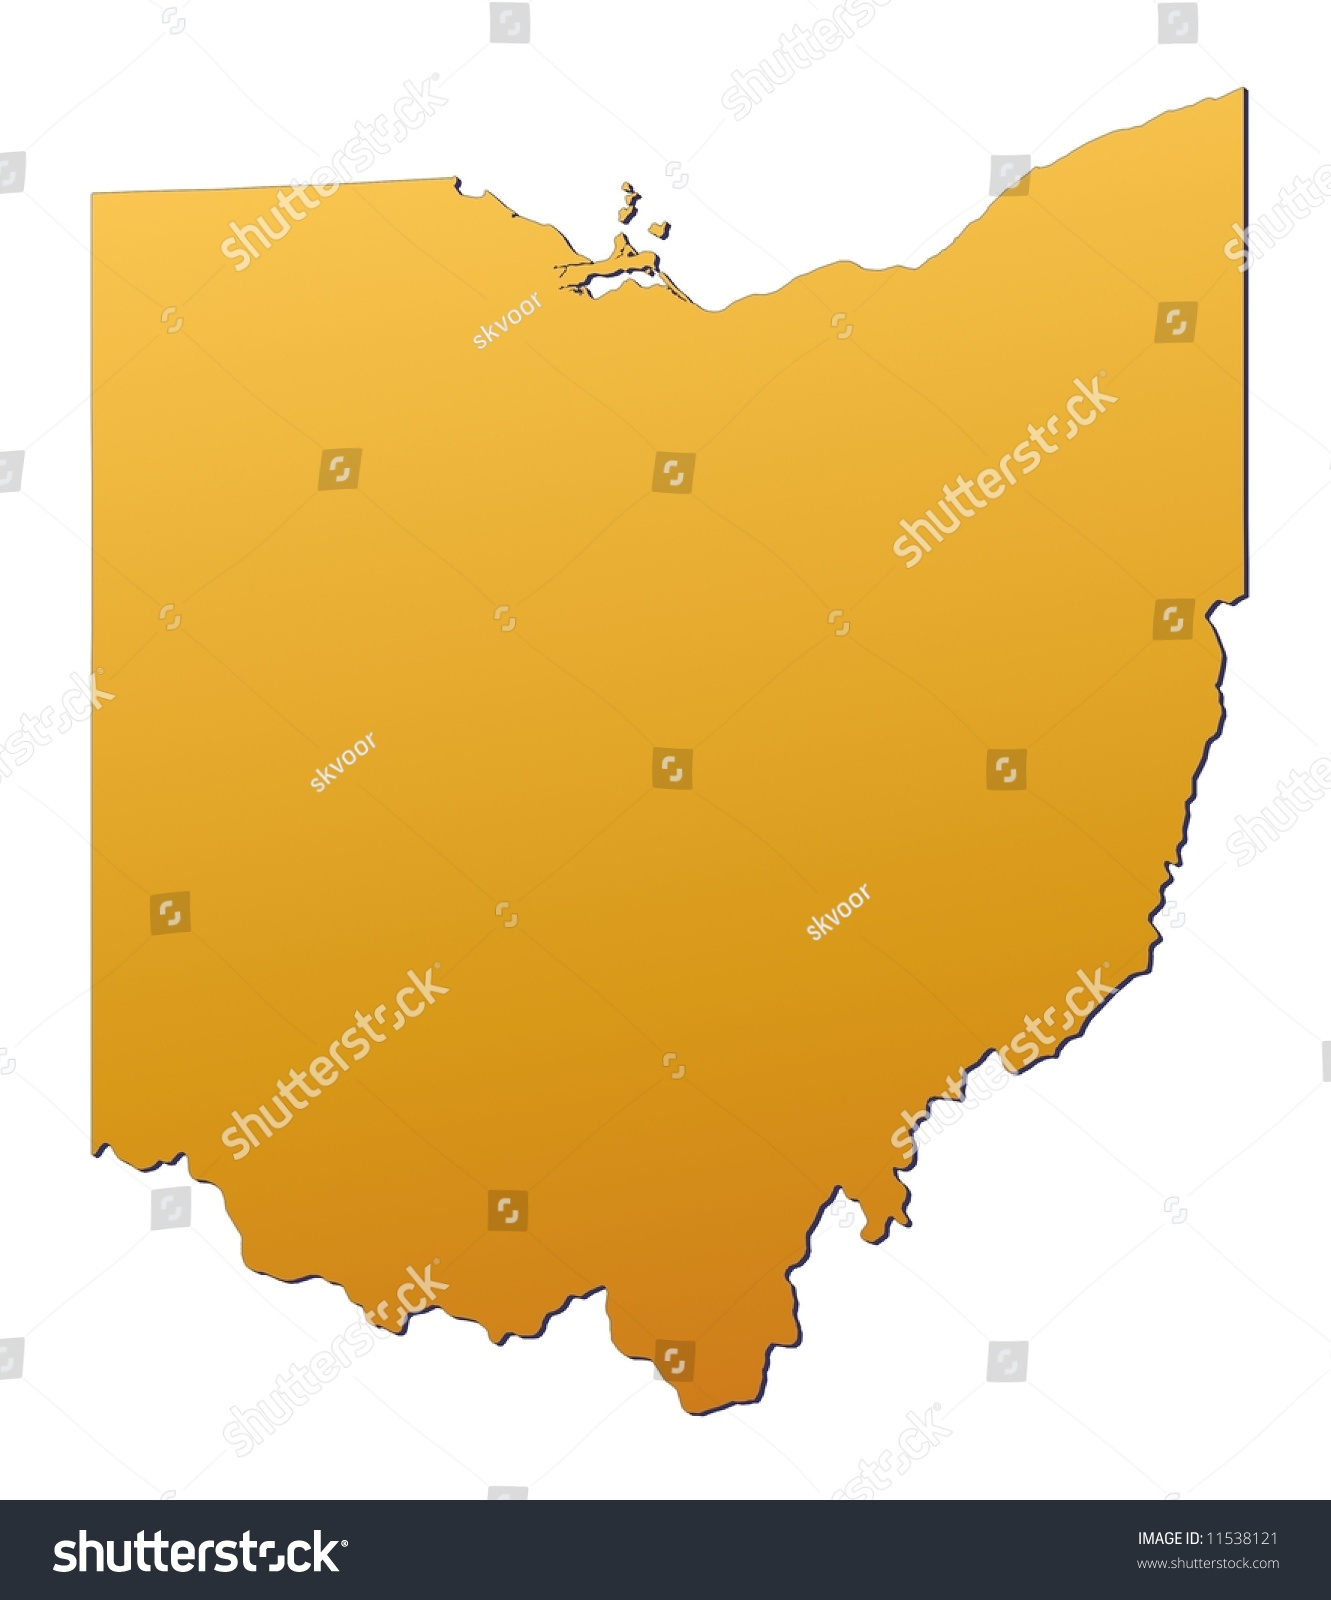 USA Road Map Map Usa Road Google Images Large Detailed Driving - Cleveland ohio usa map